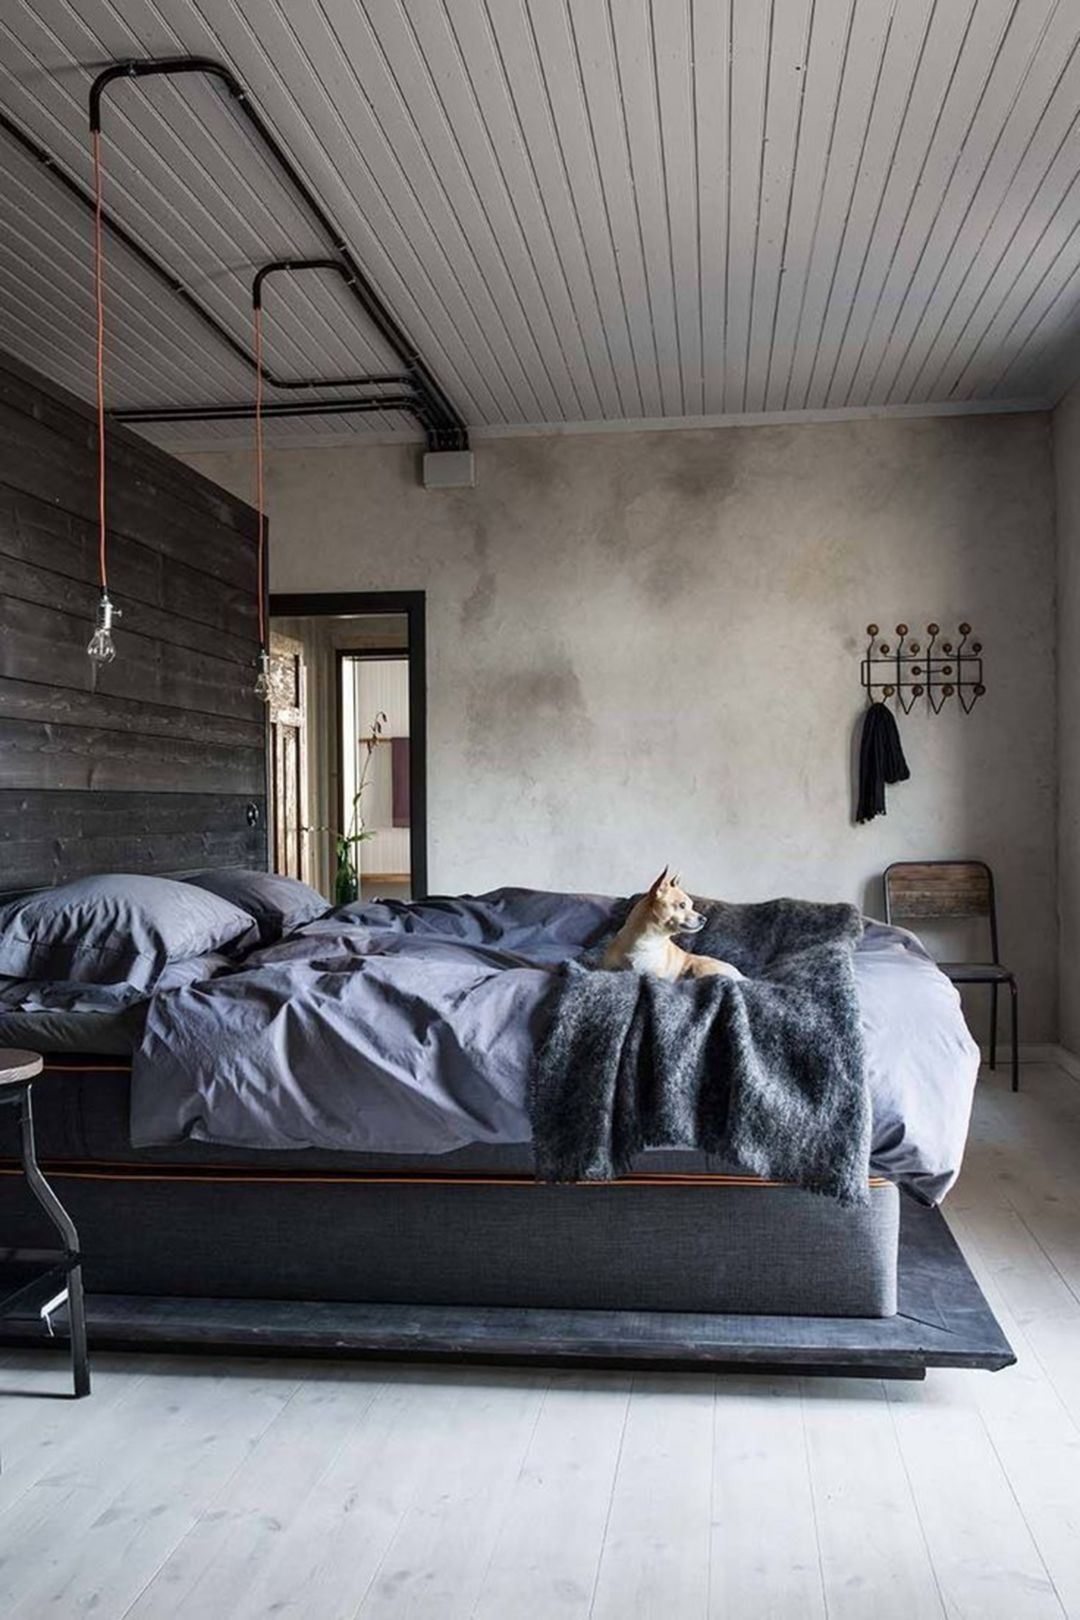 15 Awesome Industrial Style Bedroom Design Ideas Industrial Bedroom Design Industrial Style Bedroom Industrial Decor Bedroom